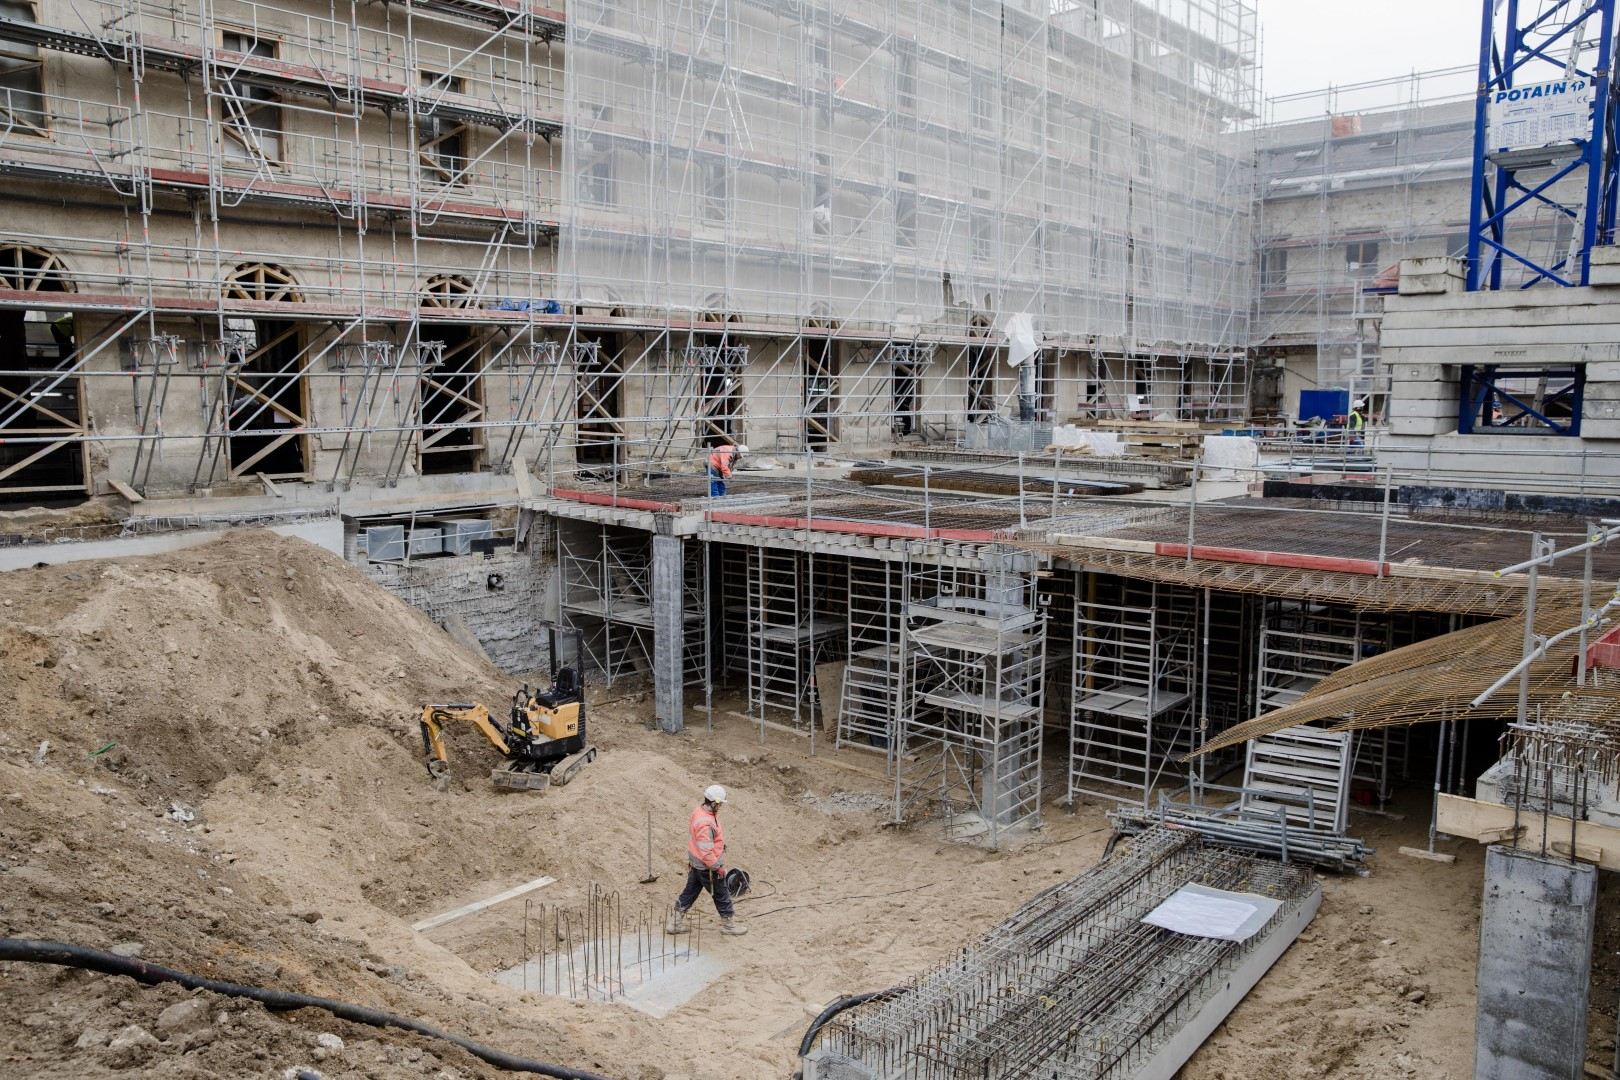 """A construction worker walks in an excavation at the Abbey of Penthemont as Vinci SA carry out renovation work on the 18th century building in Paris, France, on Thursday, Jan. 12, 2017. After months of muddling through, evidence is building that the euro area has finally embarked on what European Central Bank President Mario Draghi calls a """"moderate but firming recovery."""" Photographer: Marlene Awaad/Bloomberg"""